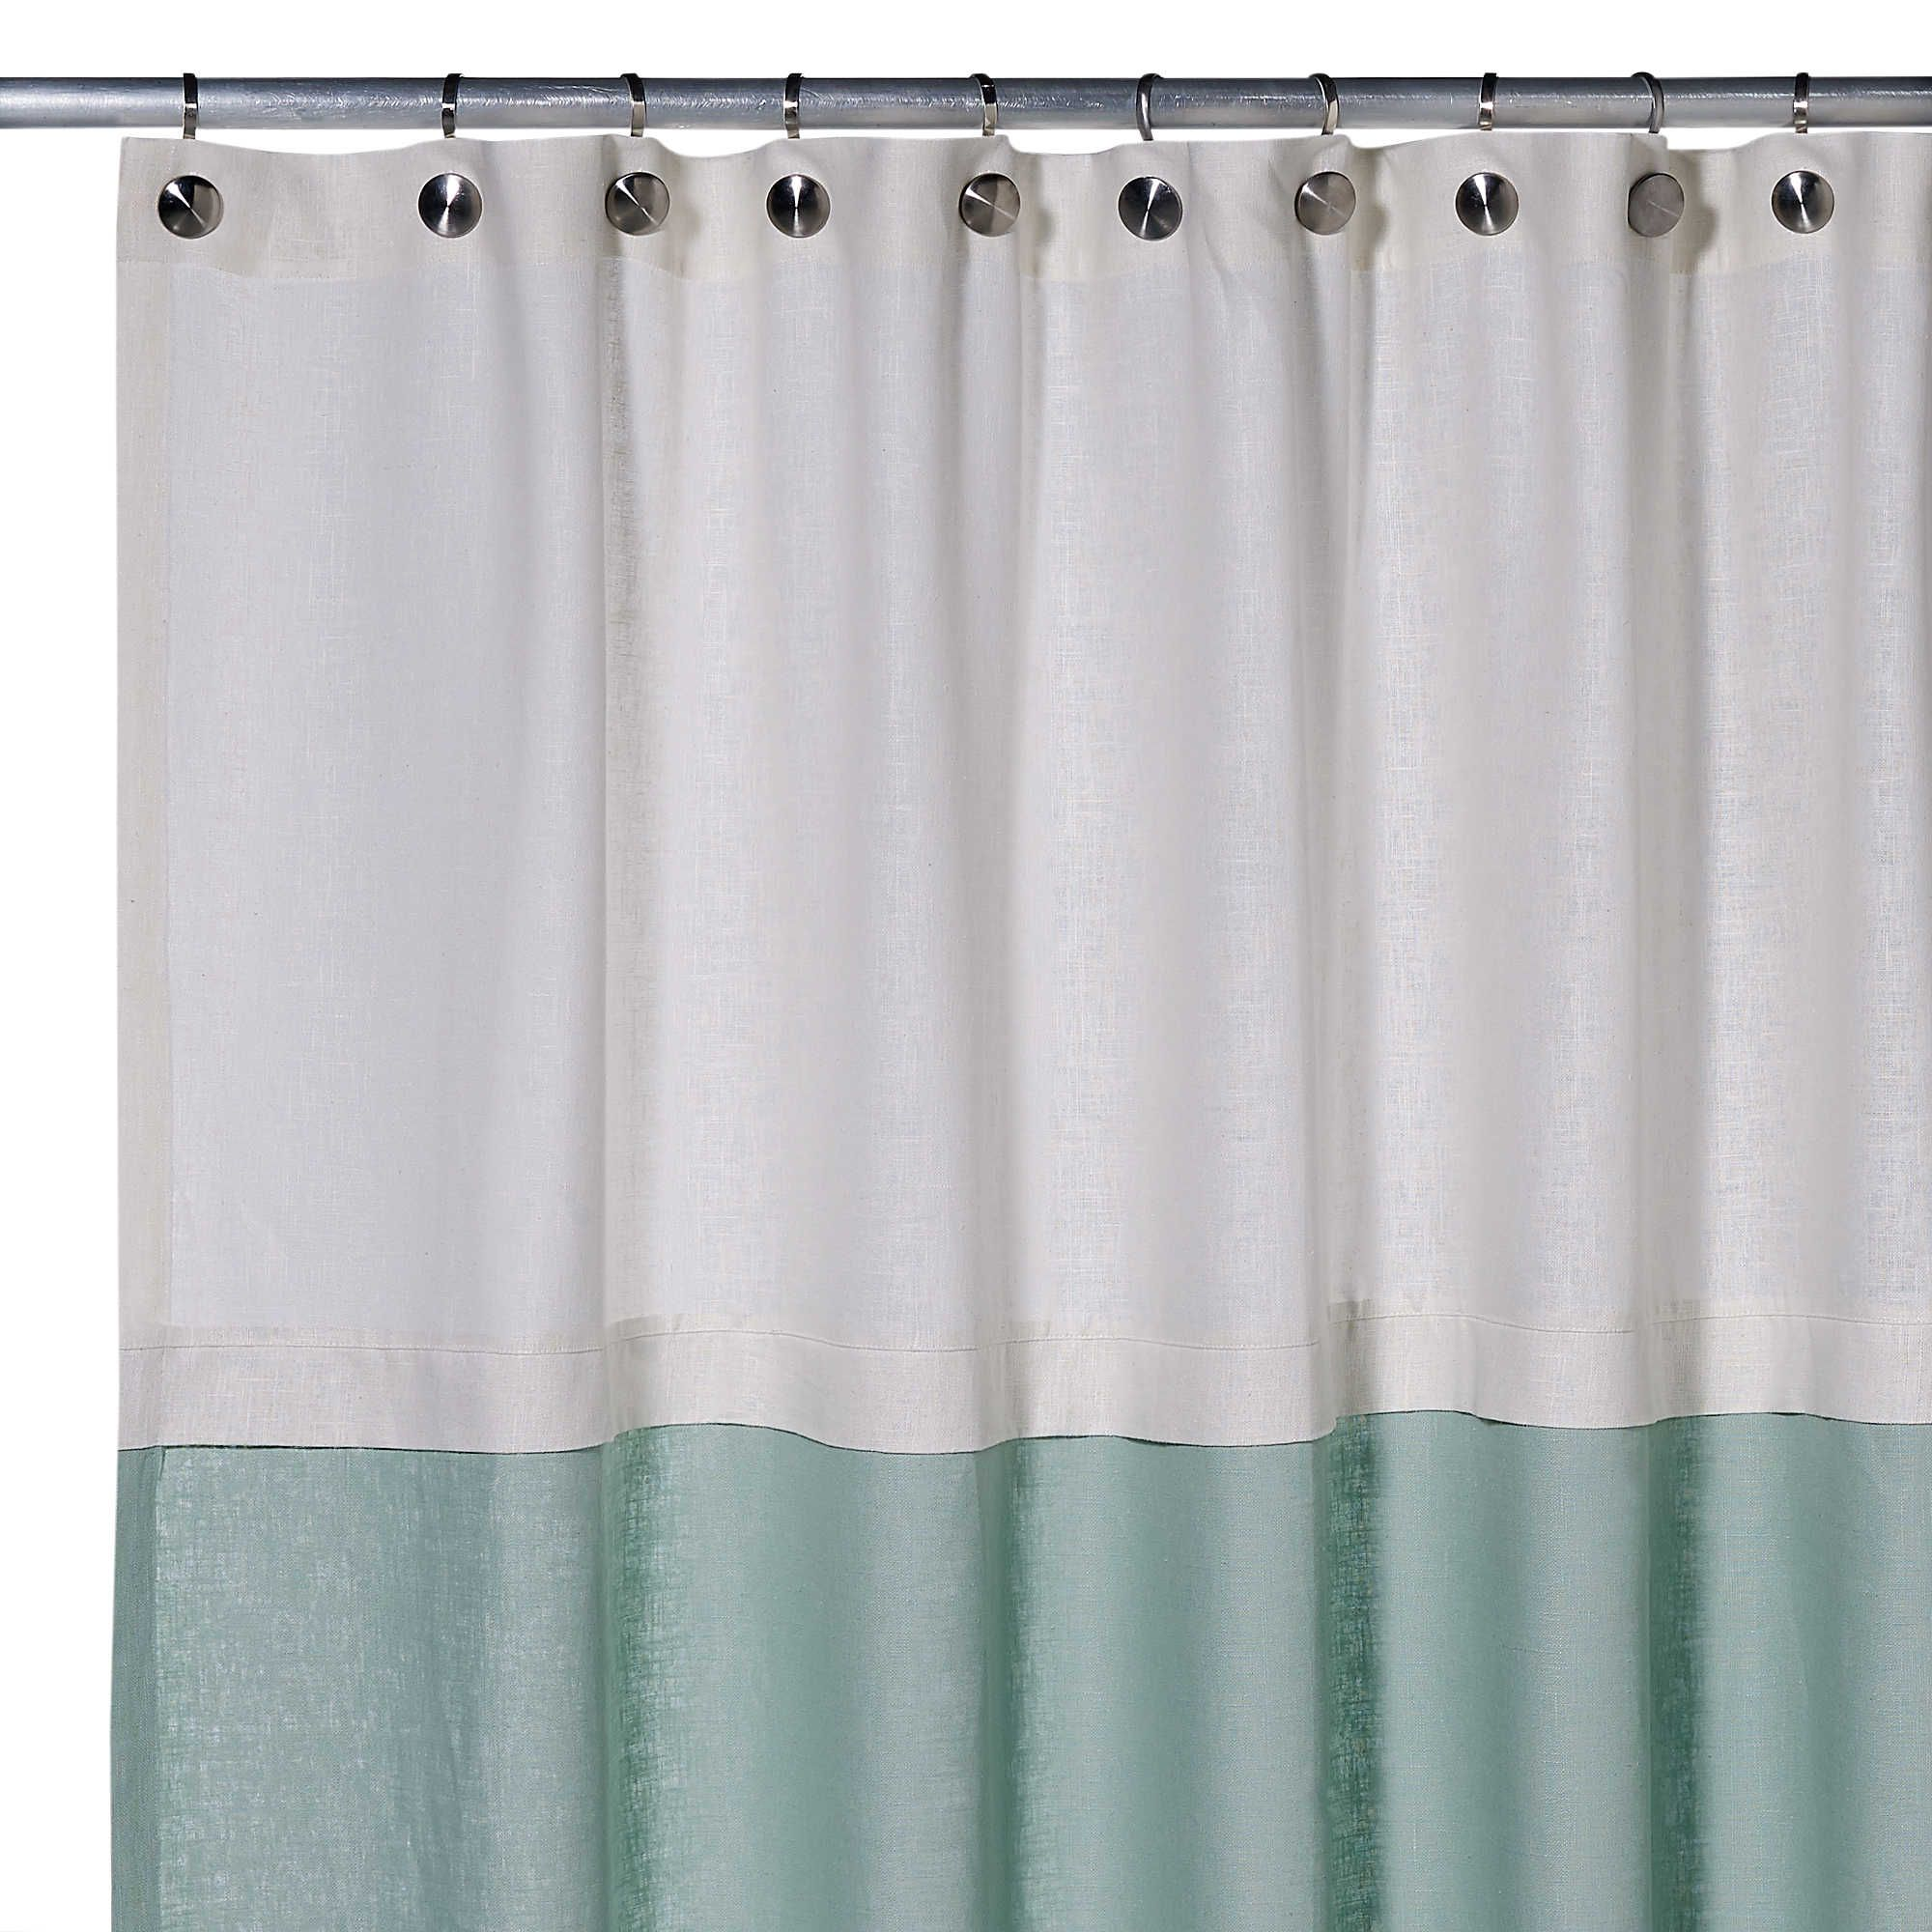 parachute garment curtain products washed linen home shower white